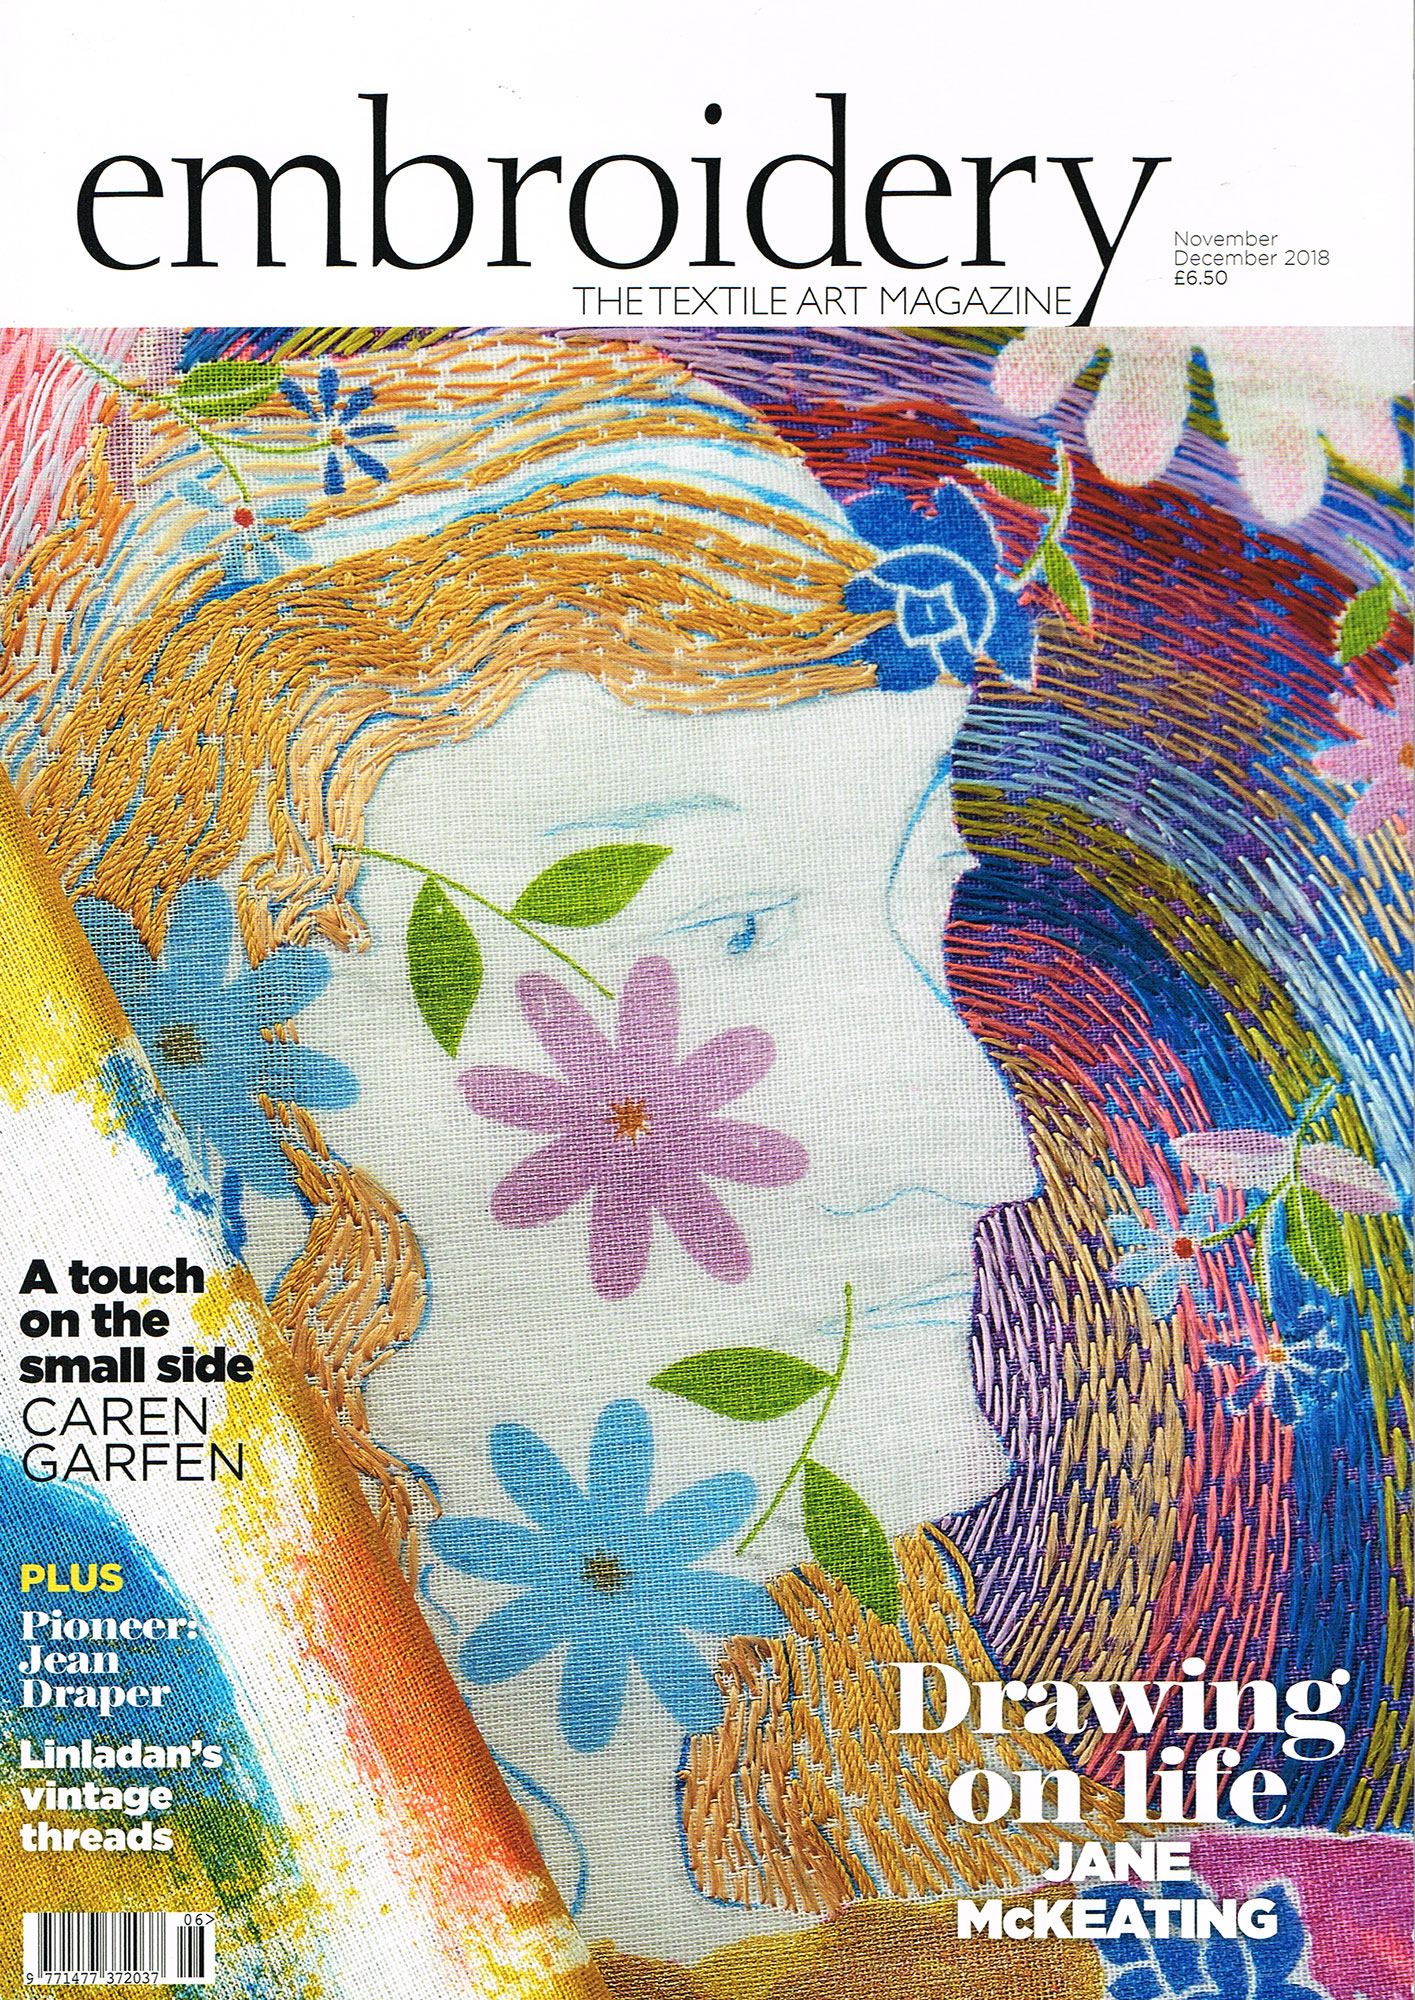 Embroidery The Textile Art Magazine